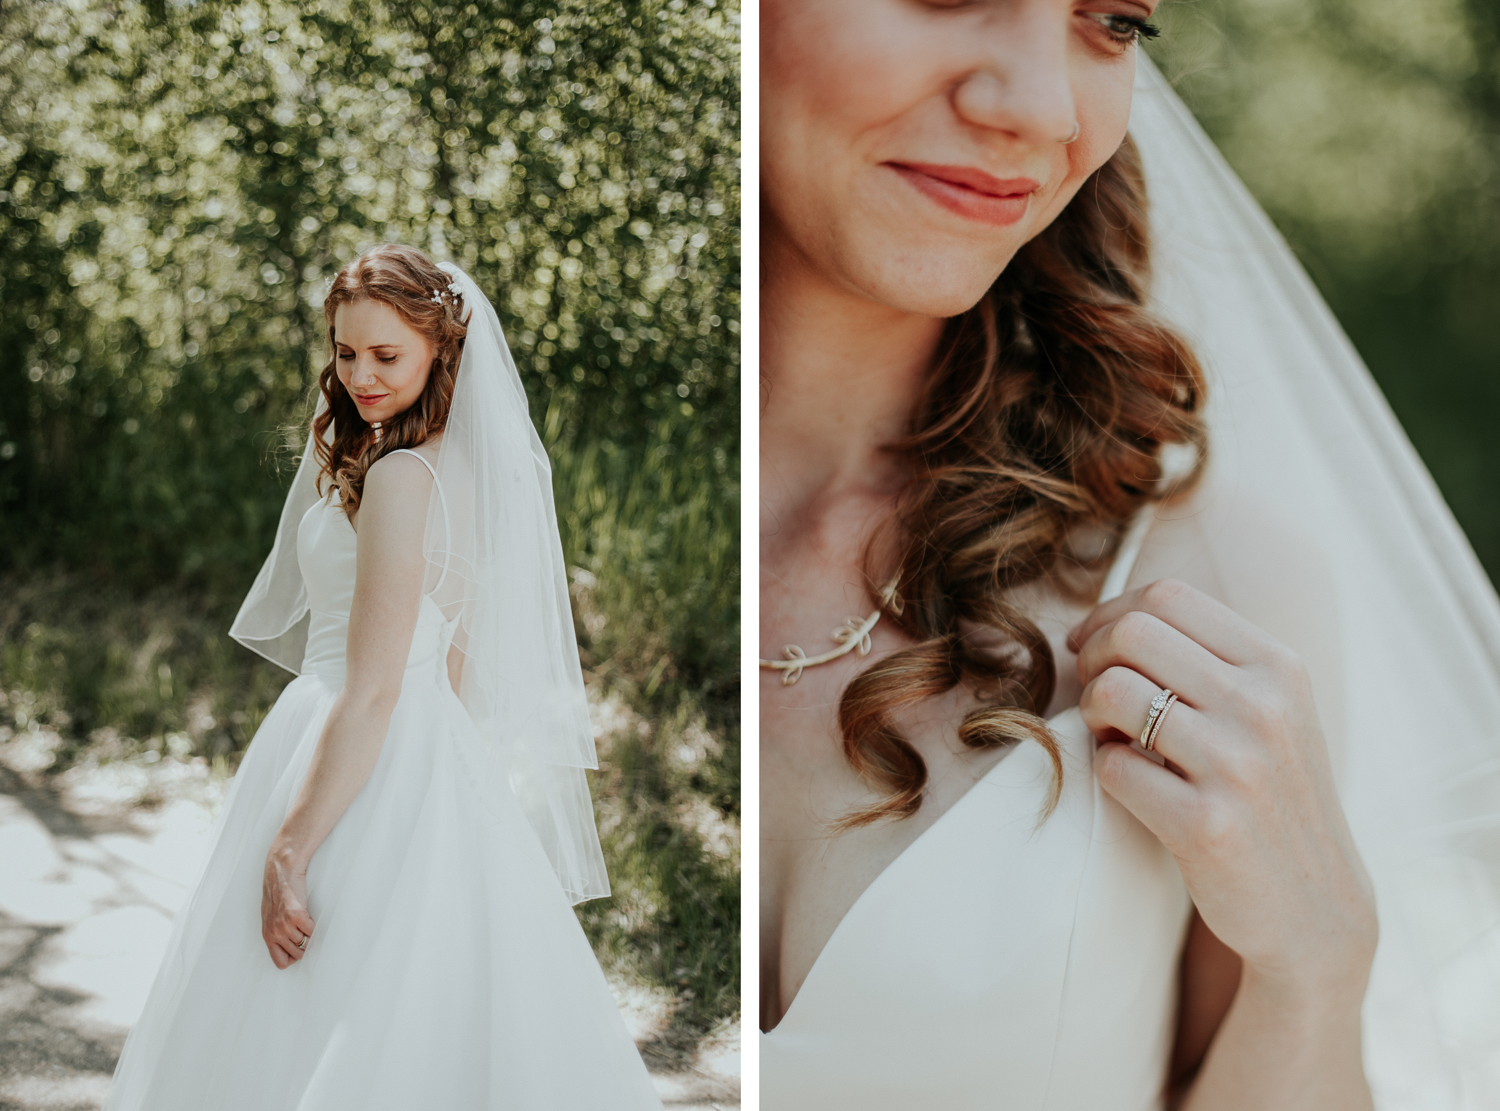 lethbridge-wedding-photographer-love-and-be-loved-photography-dan-tynnea-picture-image-photo-141.jpg